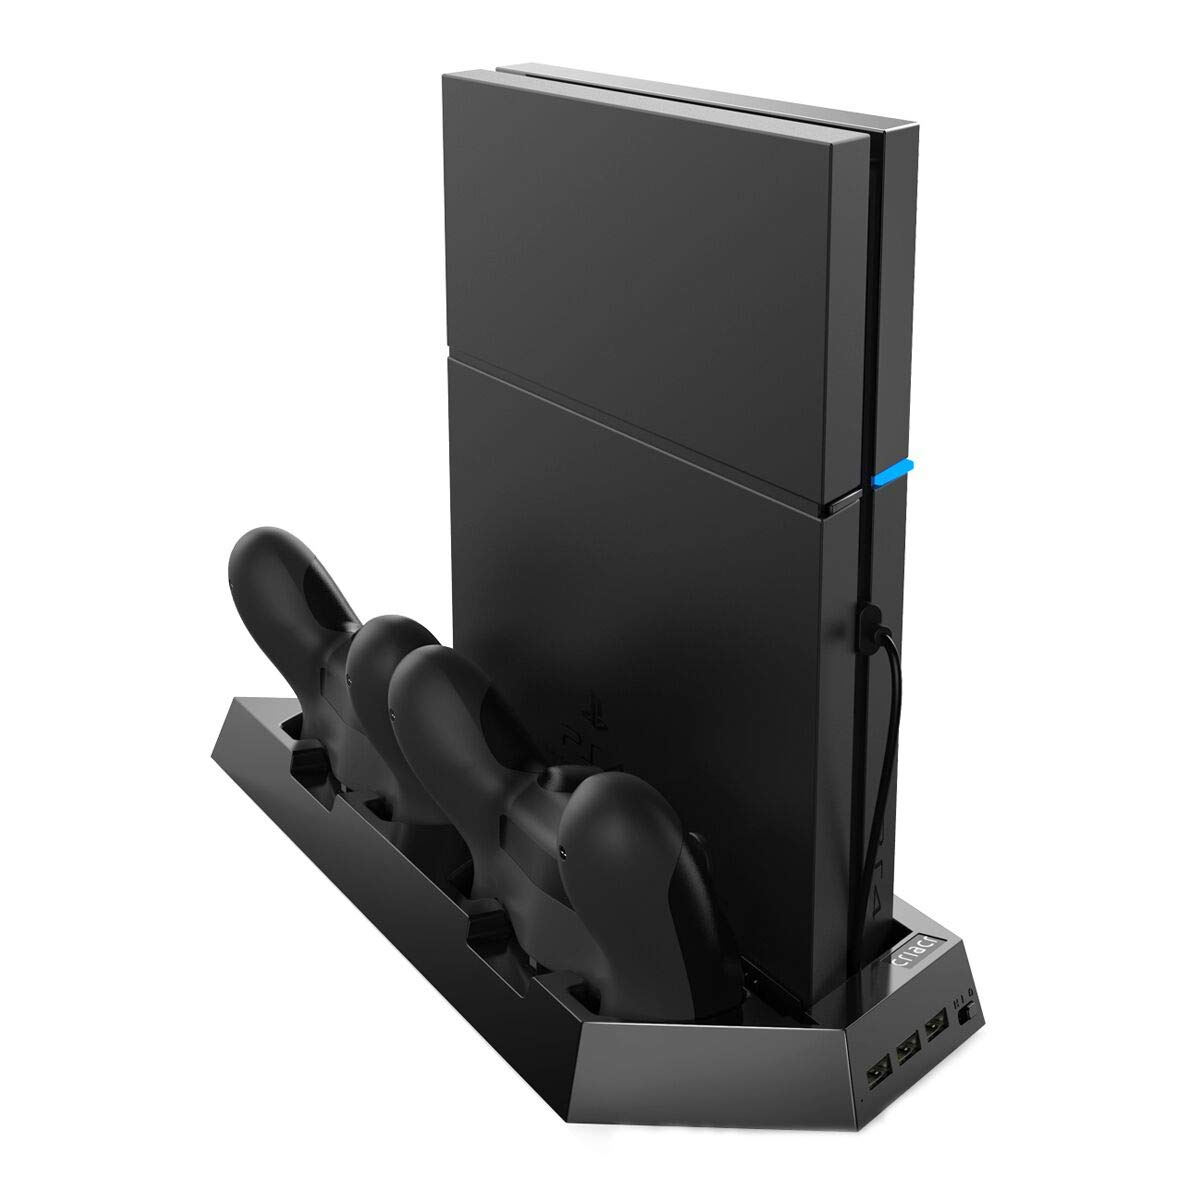 Criacr Vertical Stand for PS4 Slim with Cooling Fans, 3-port USB Hub for SONY, PlayStation 4/Slim, Space Saving Charging Station, Dual Charger for DualShock 4 Wireless Controllers by Criacr